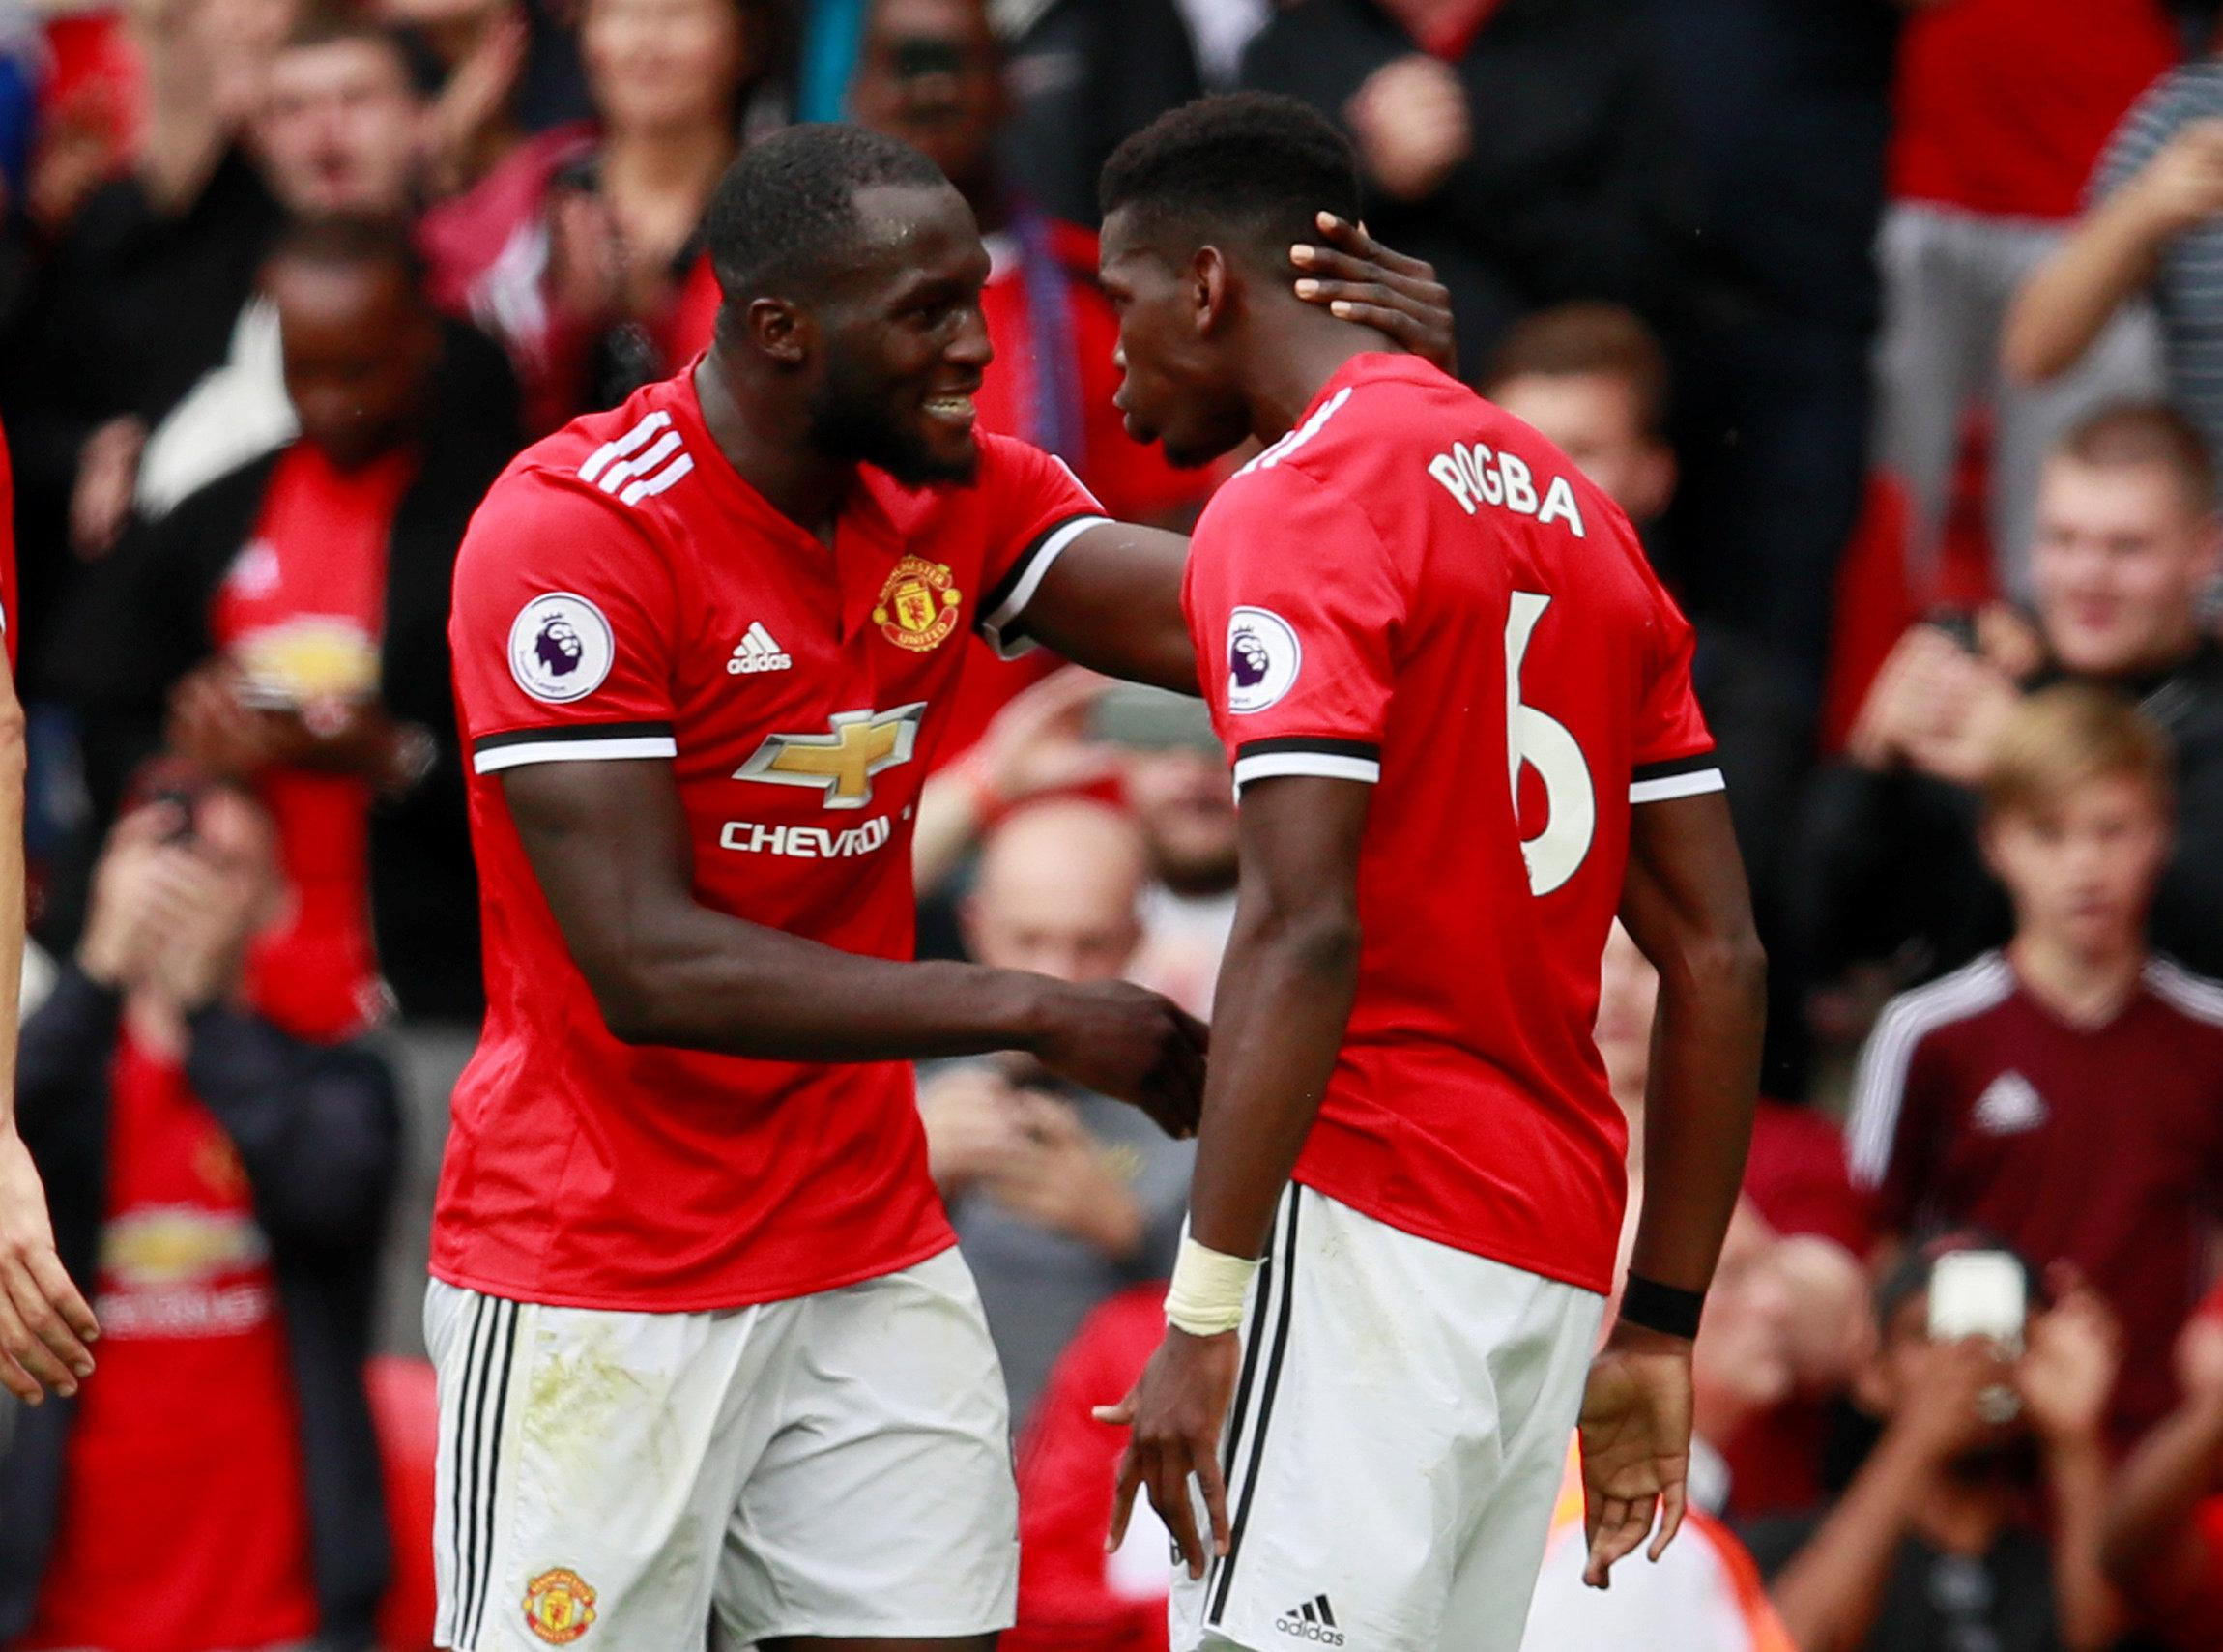 Lukaku and Pogba looked electric together